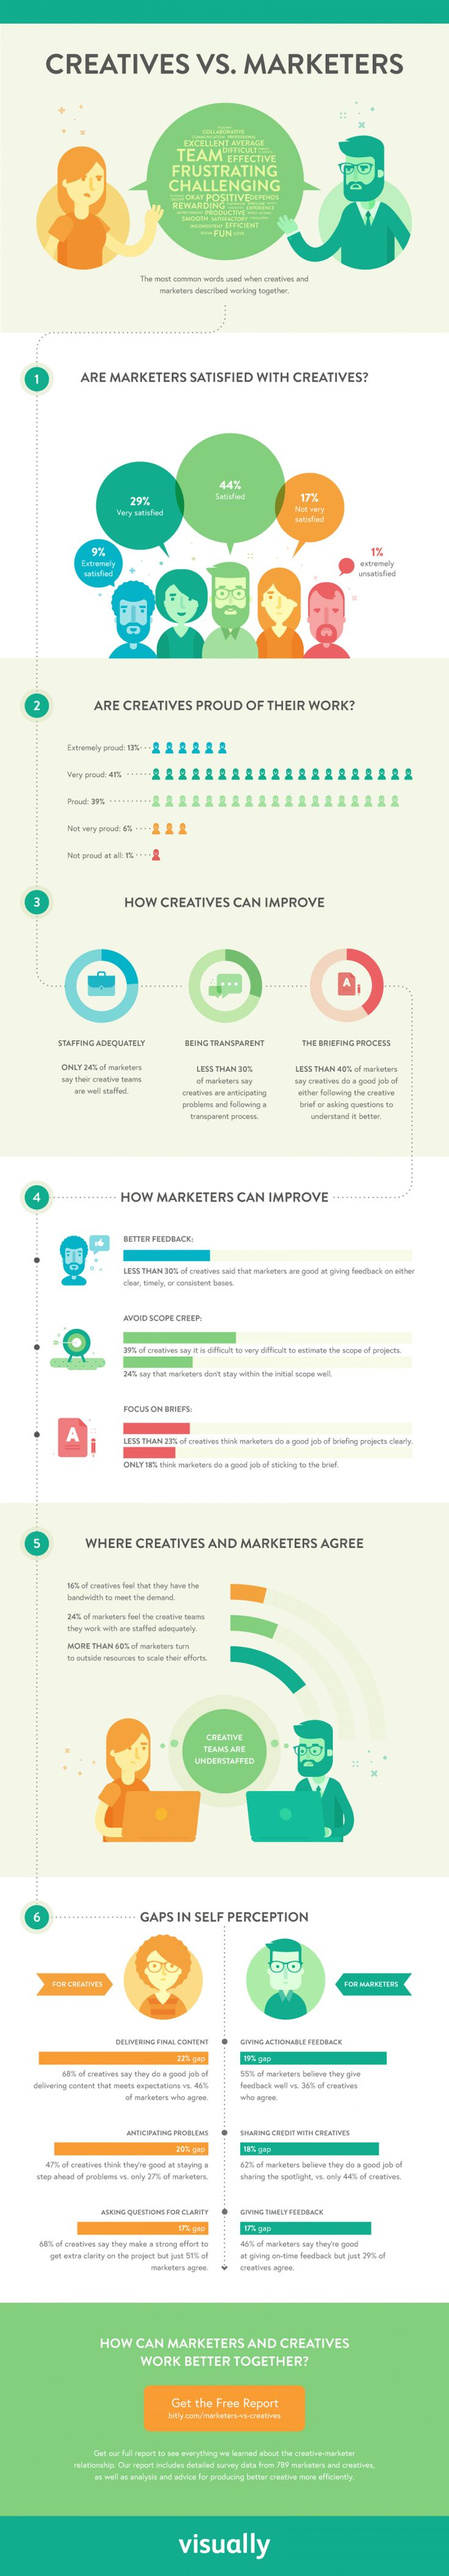 Creatives VS Marketers #Infographic #ContentMarketing #Marketing